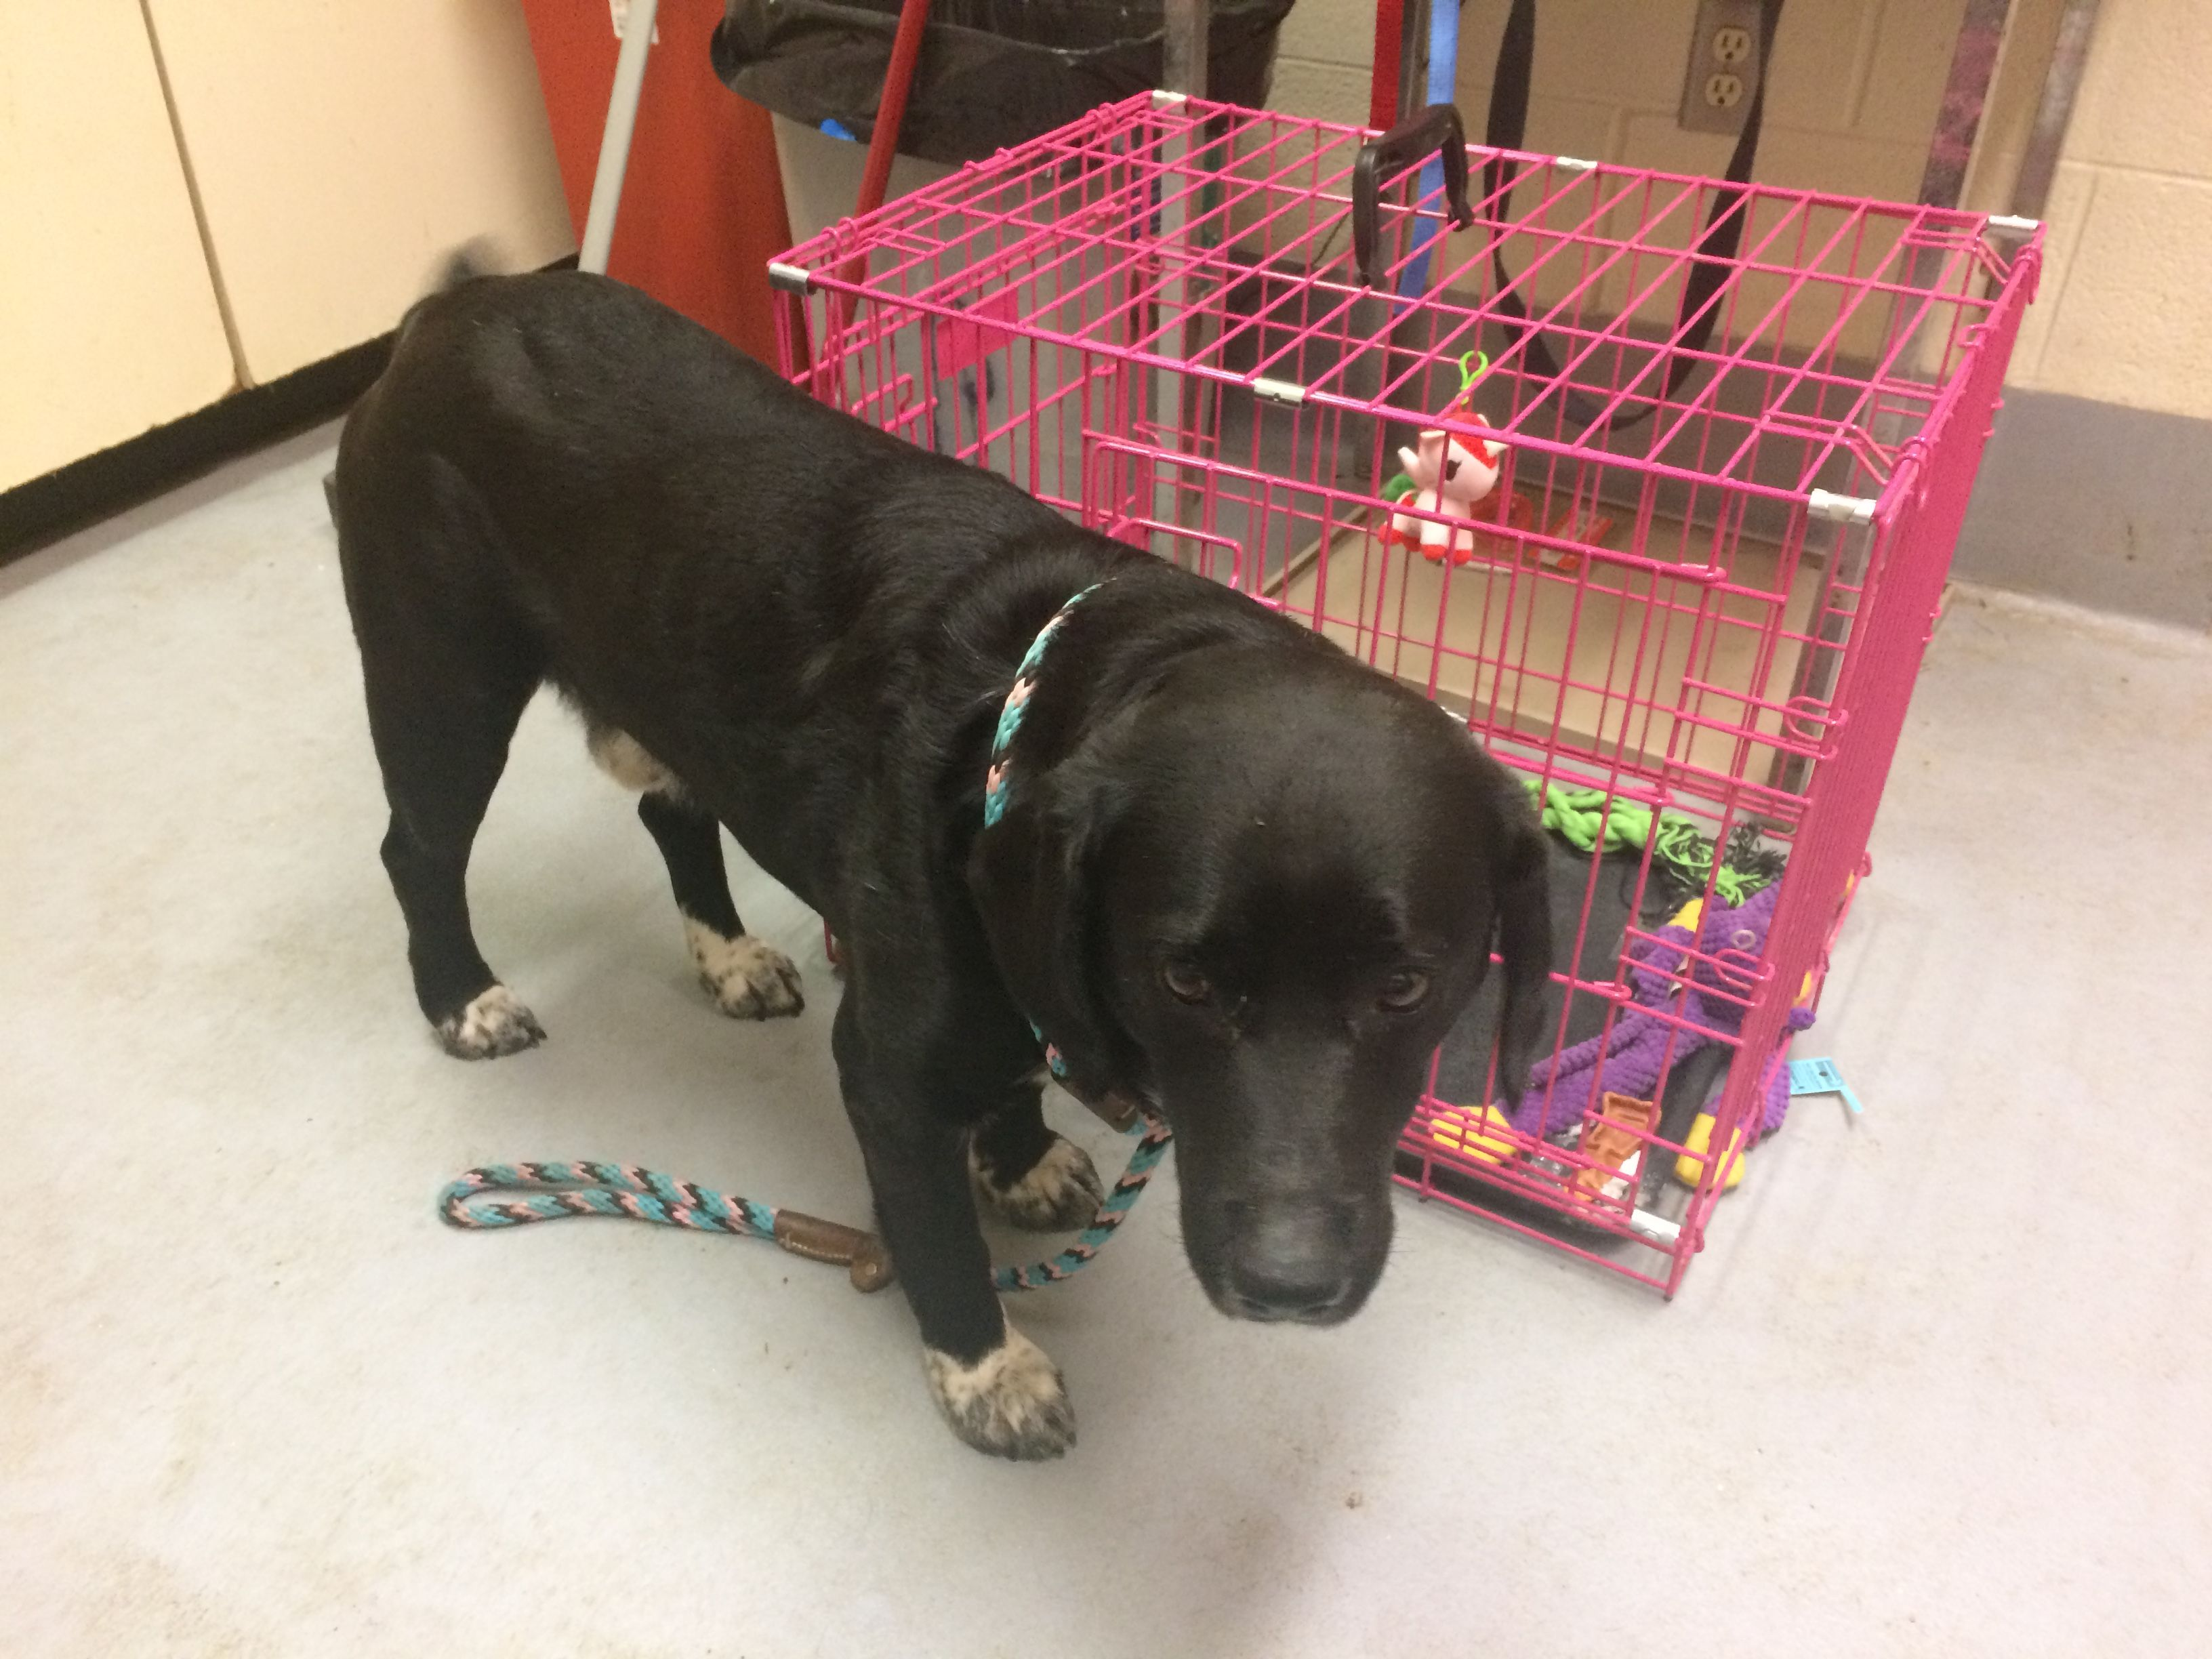 Labrador Retriever dog for Adoption in Beckley, WV. ADN